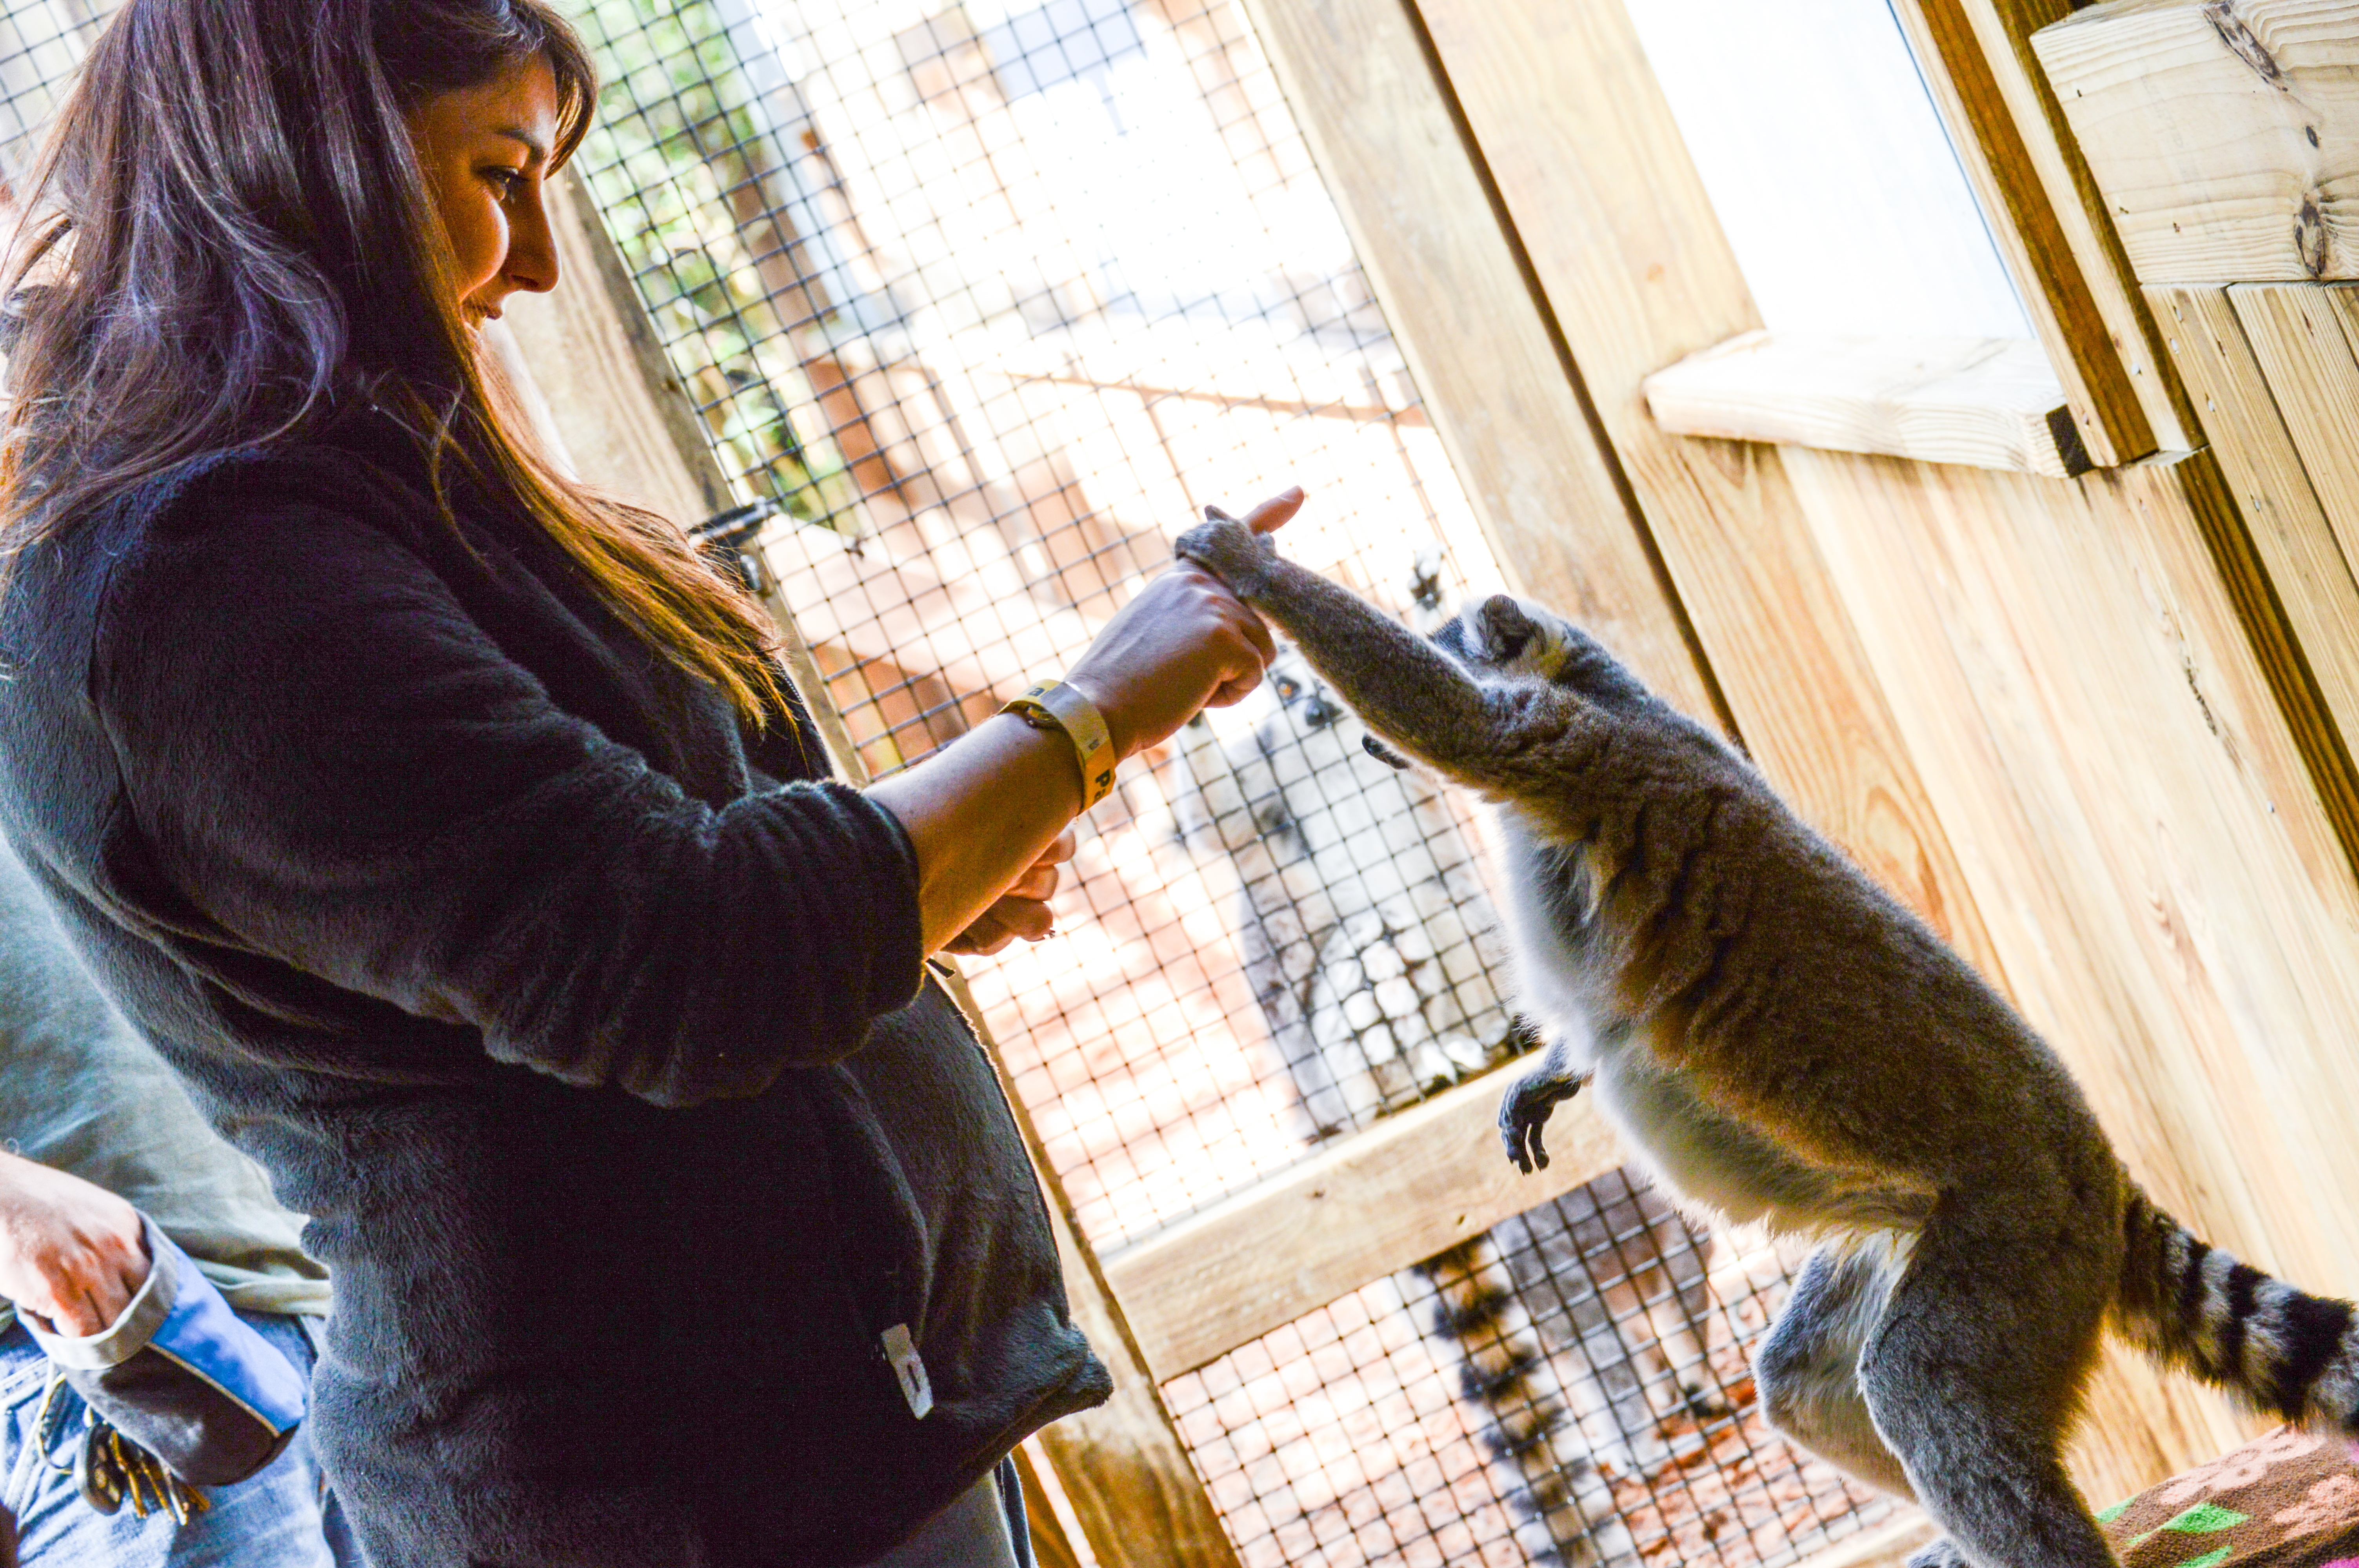 Lemur and girl holding hands